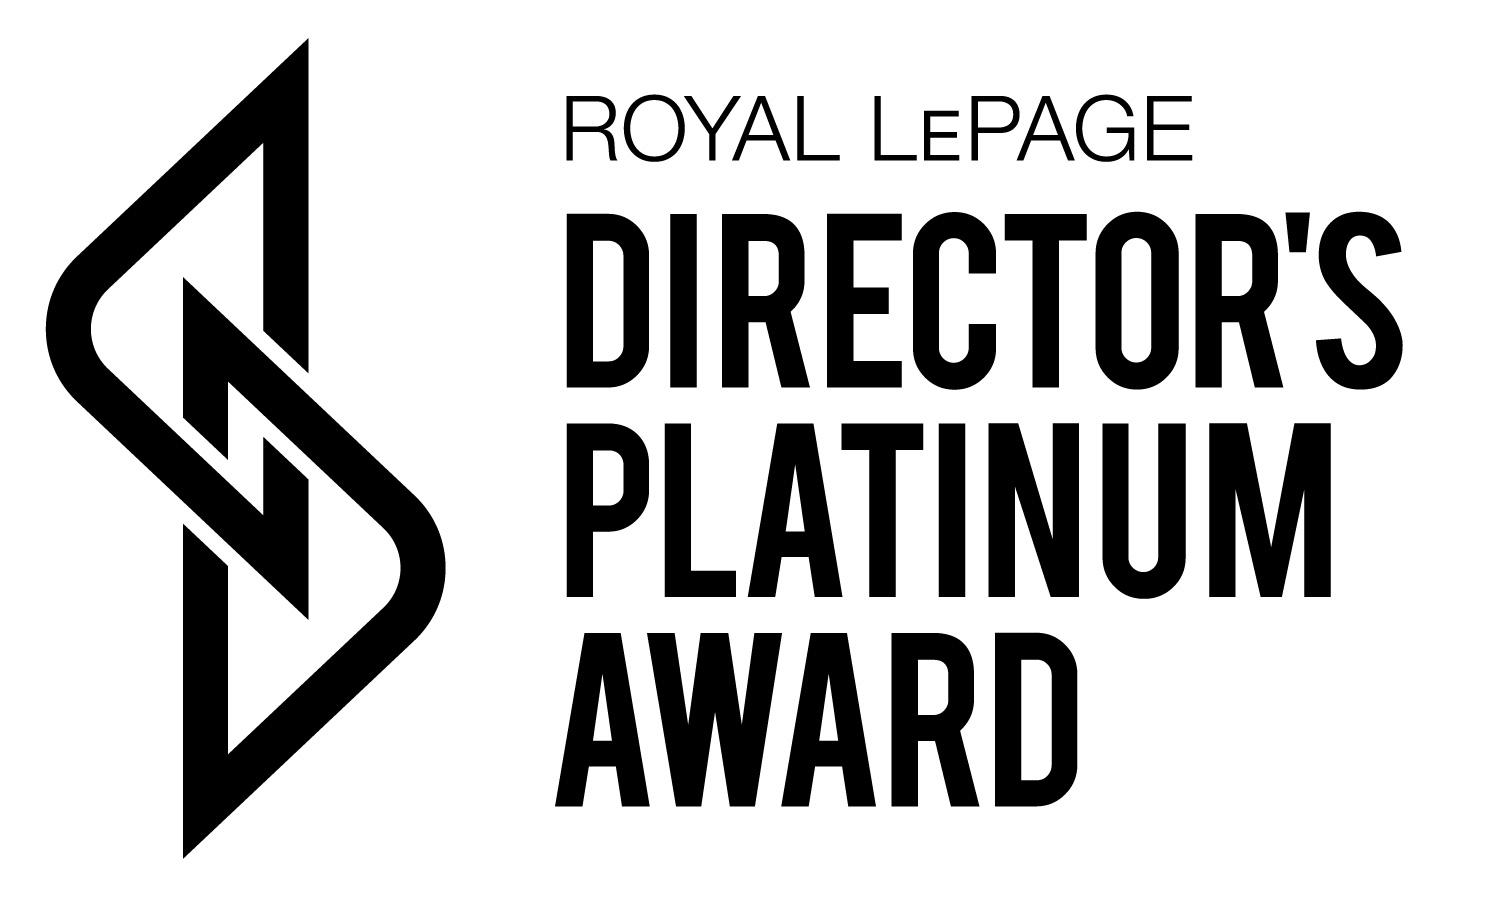 The Director's Platinum Award